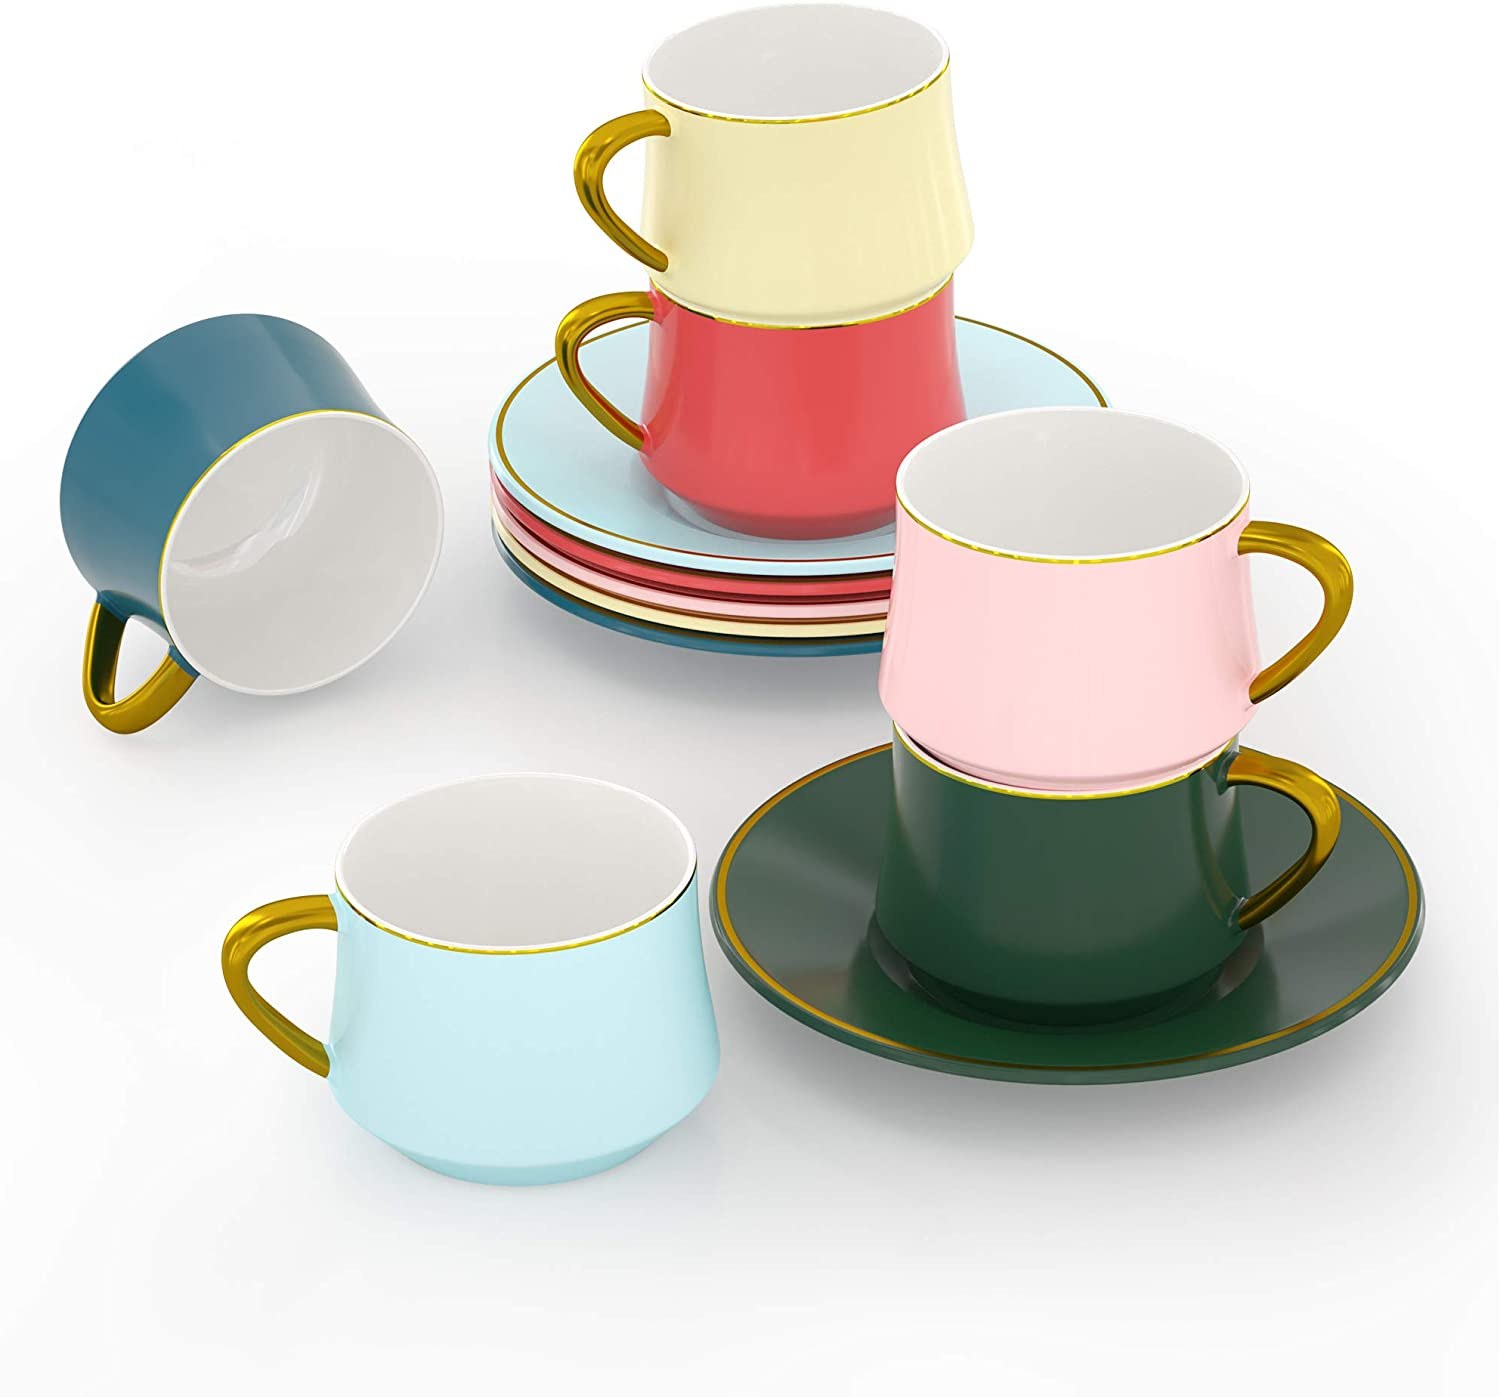 ADDTREE Rainbow Series Tea Cup Set,6 Color 6-Piece Ceramic Tea Cup and Saucer Set(4 OZ), Small Cappuccino and Double Espresso, Ceramic Coffee Cups for Coffee Shop and Barista